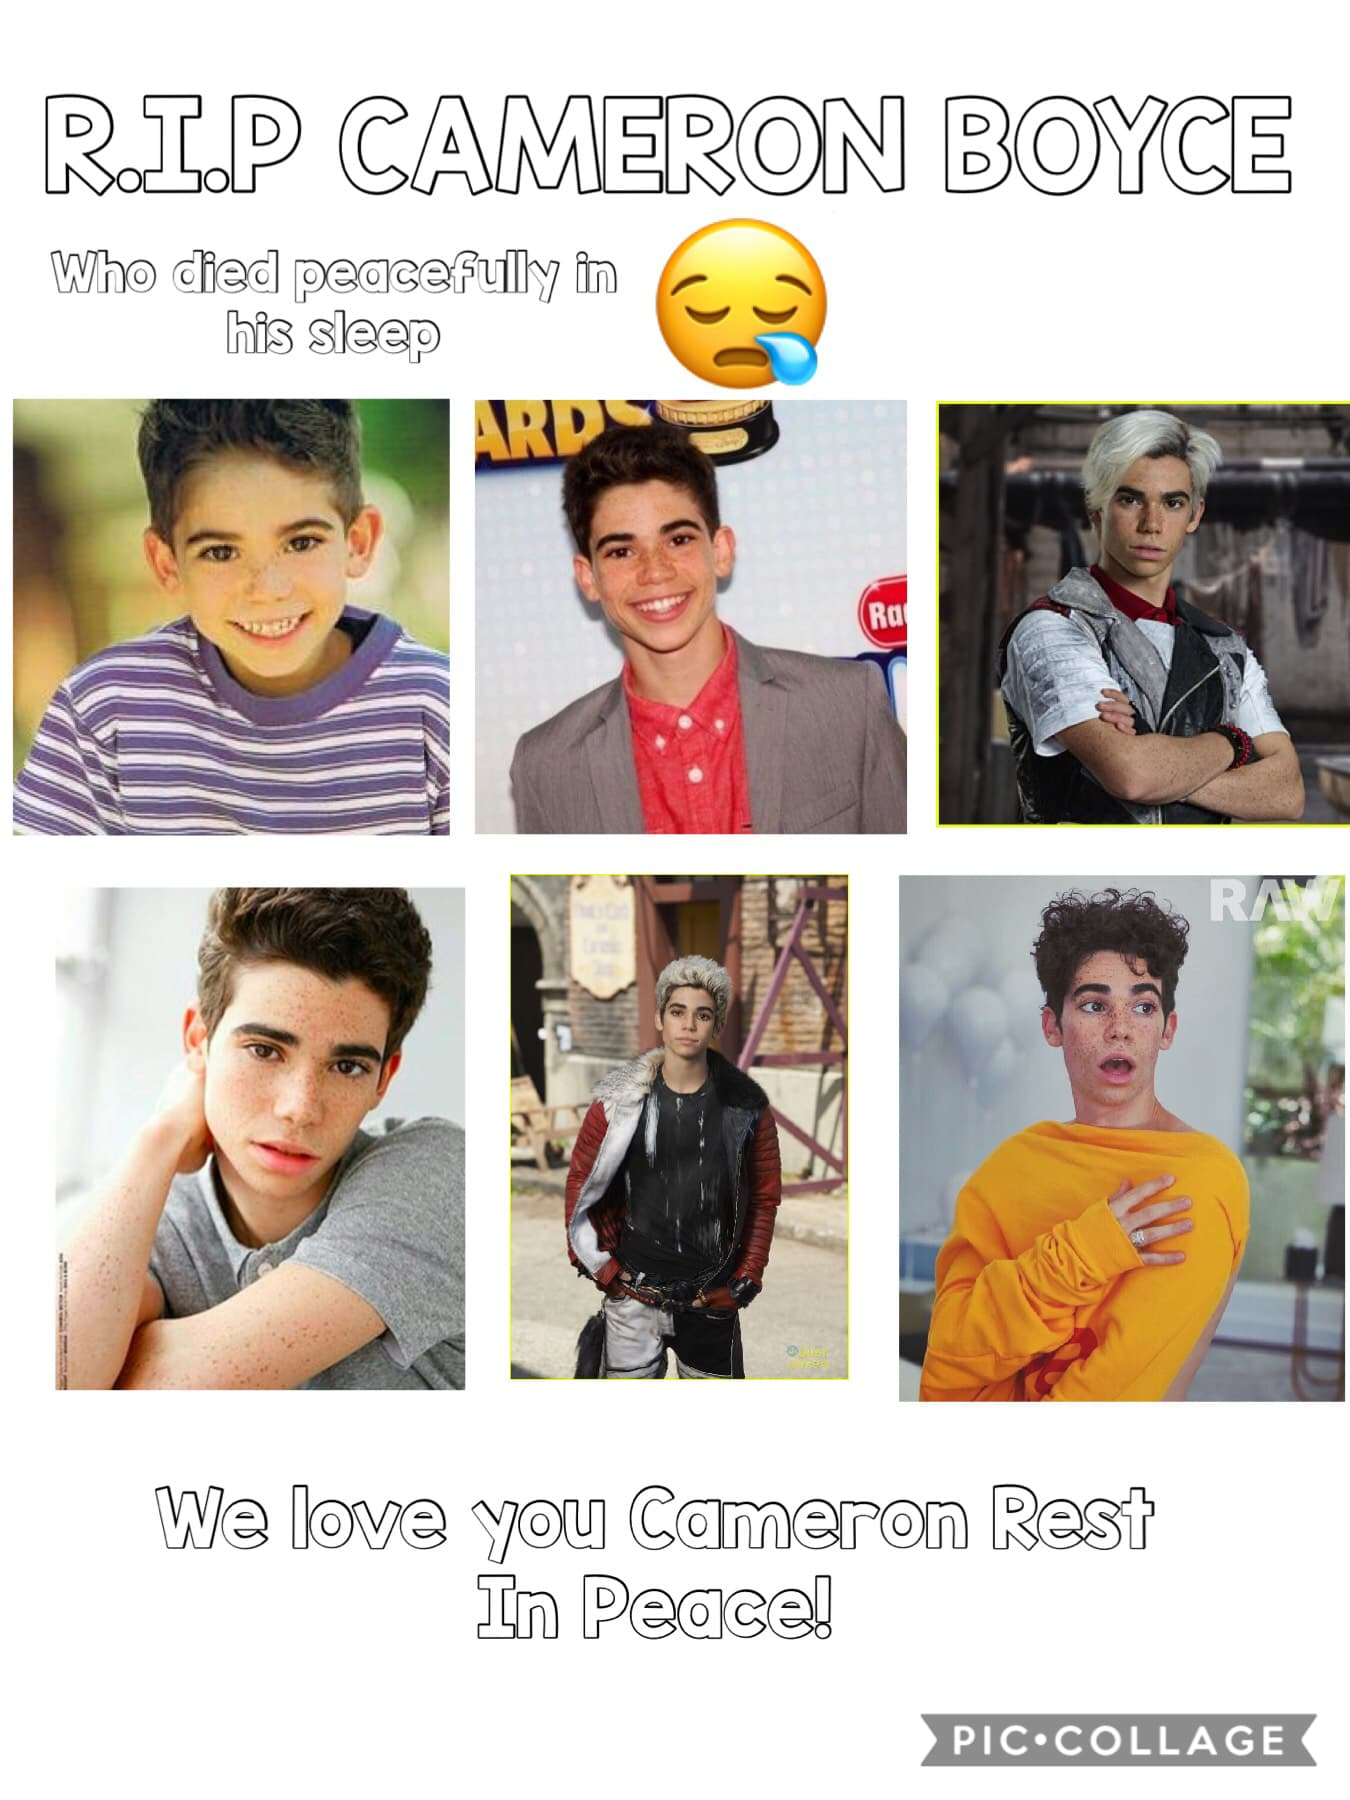 Rip the best actor Cameron Boyce  Let's all like to appreciate this amazing guy